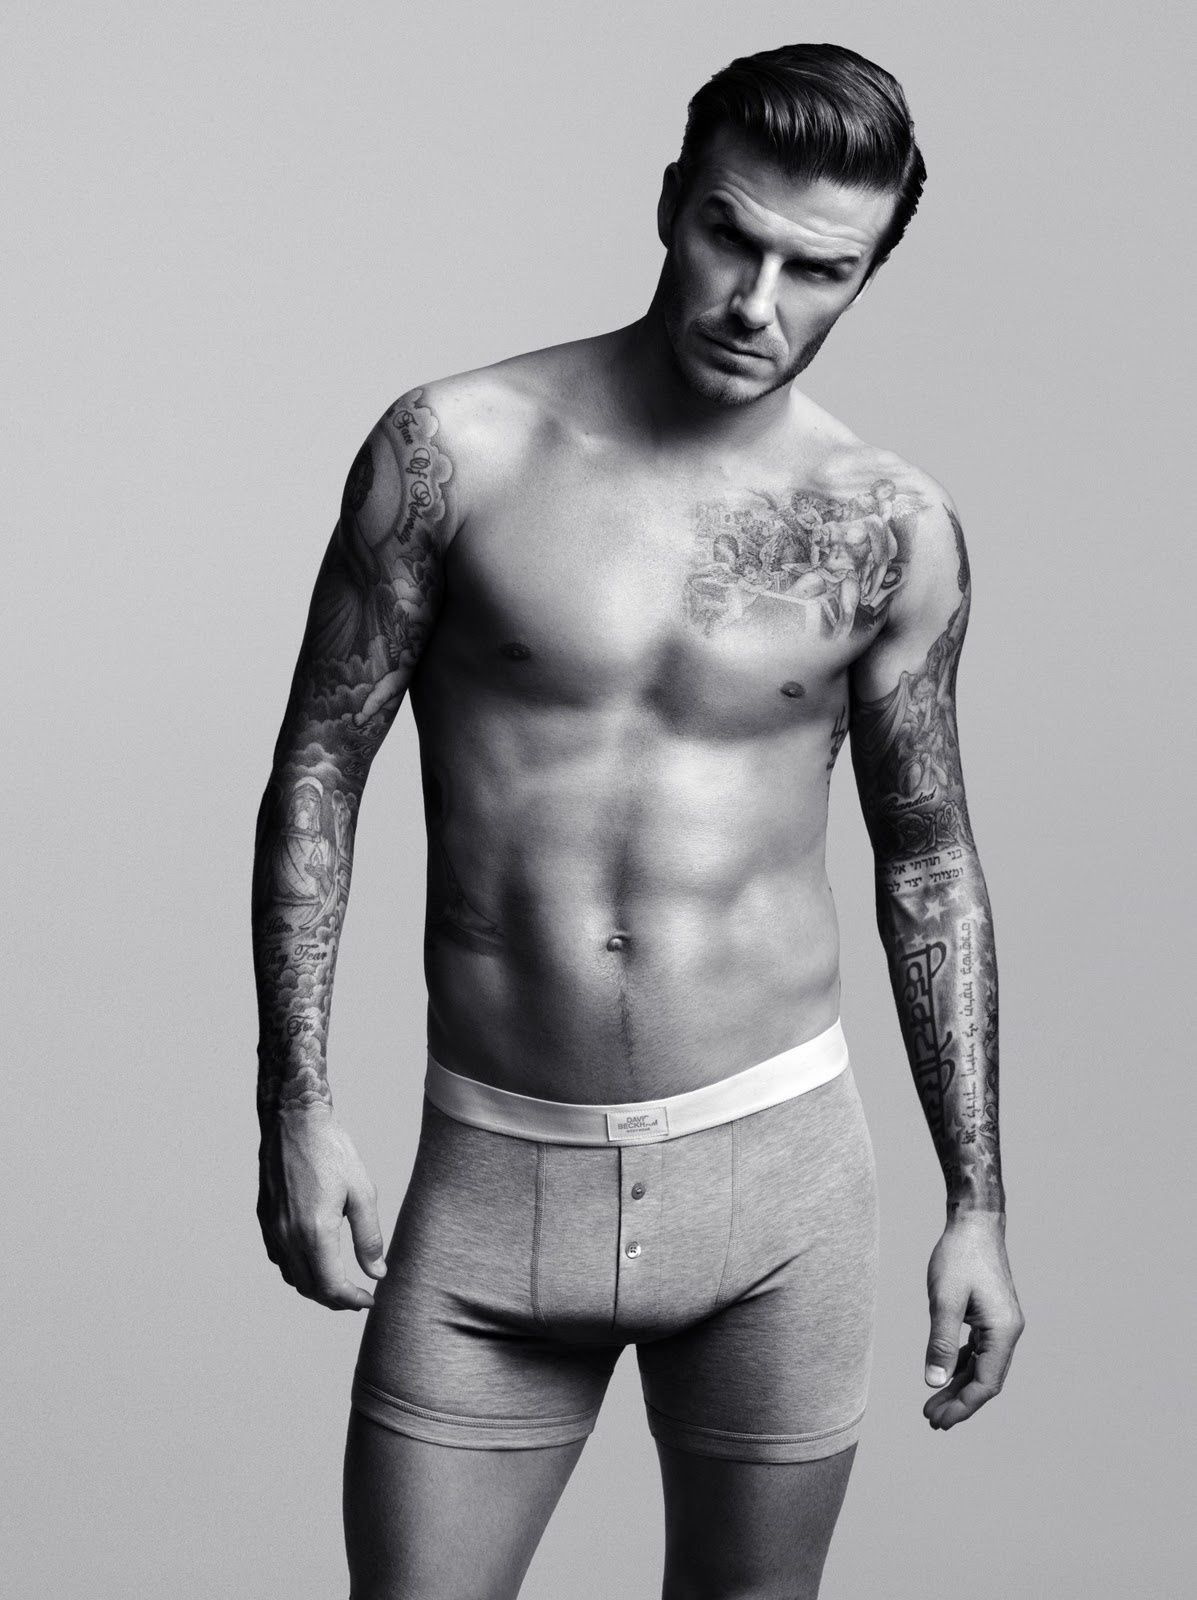 H-M-Unveil-David-Beckham-s-Bodywear-Line--2-.jpg